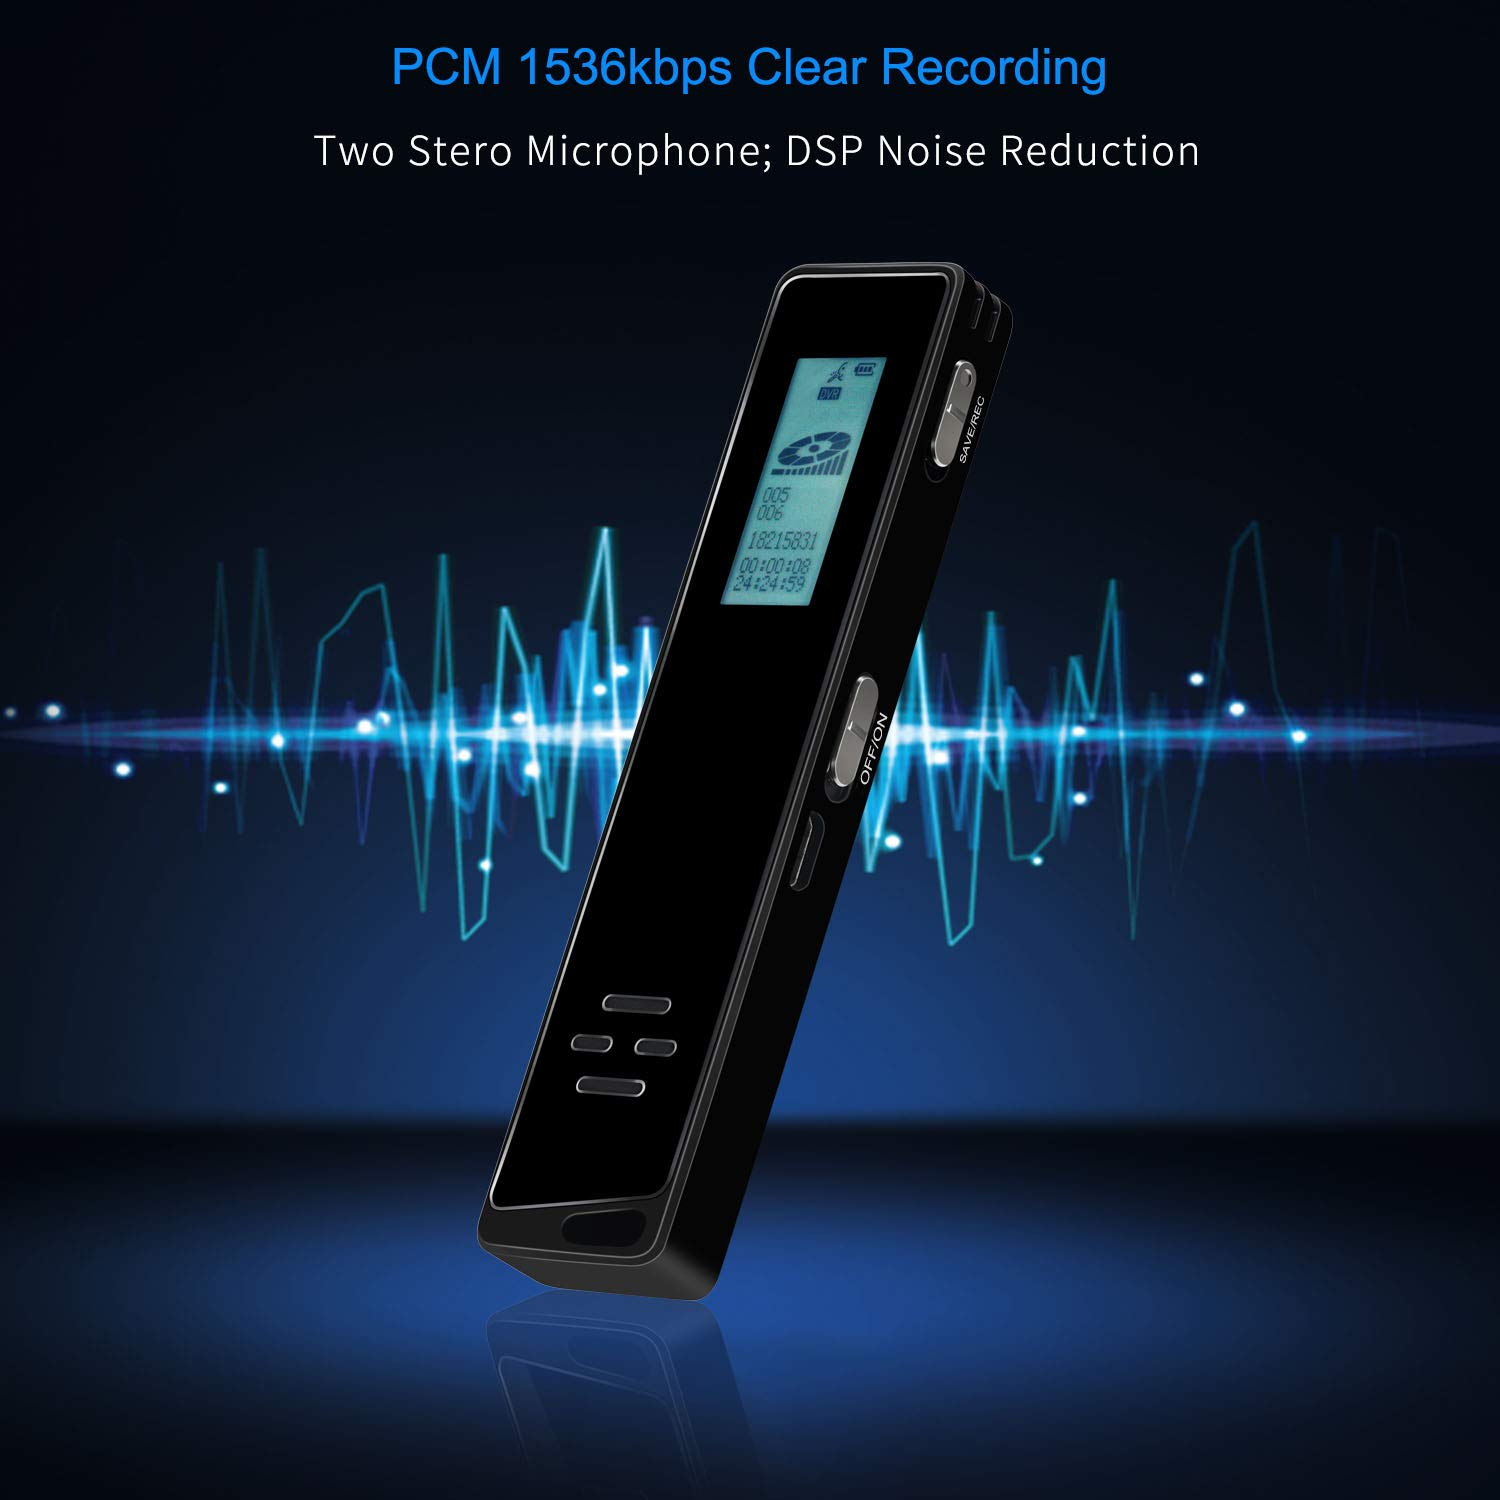 Digital Voice Activated Recorder for Lectures and Meetings with Double Noise Reduction Audio Microphone Rechargeable 16GB HD Sound Tape Mini Spy Dictaphone Recording Device with Mp3 Player USB